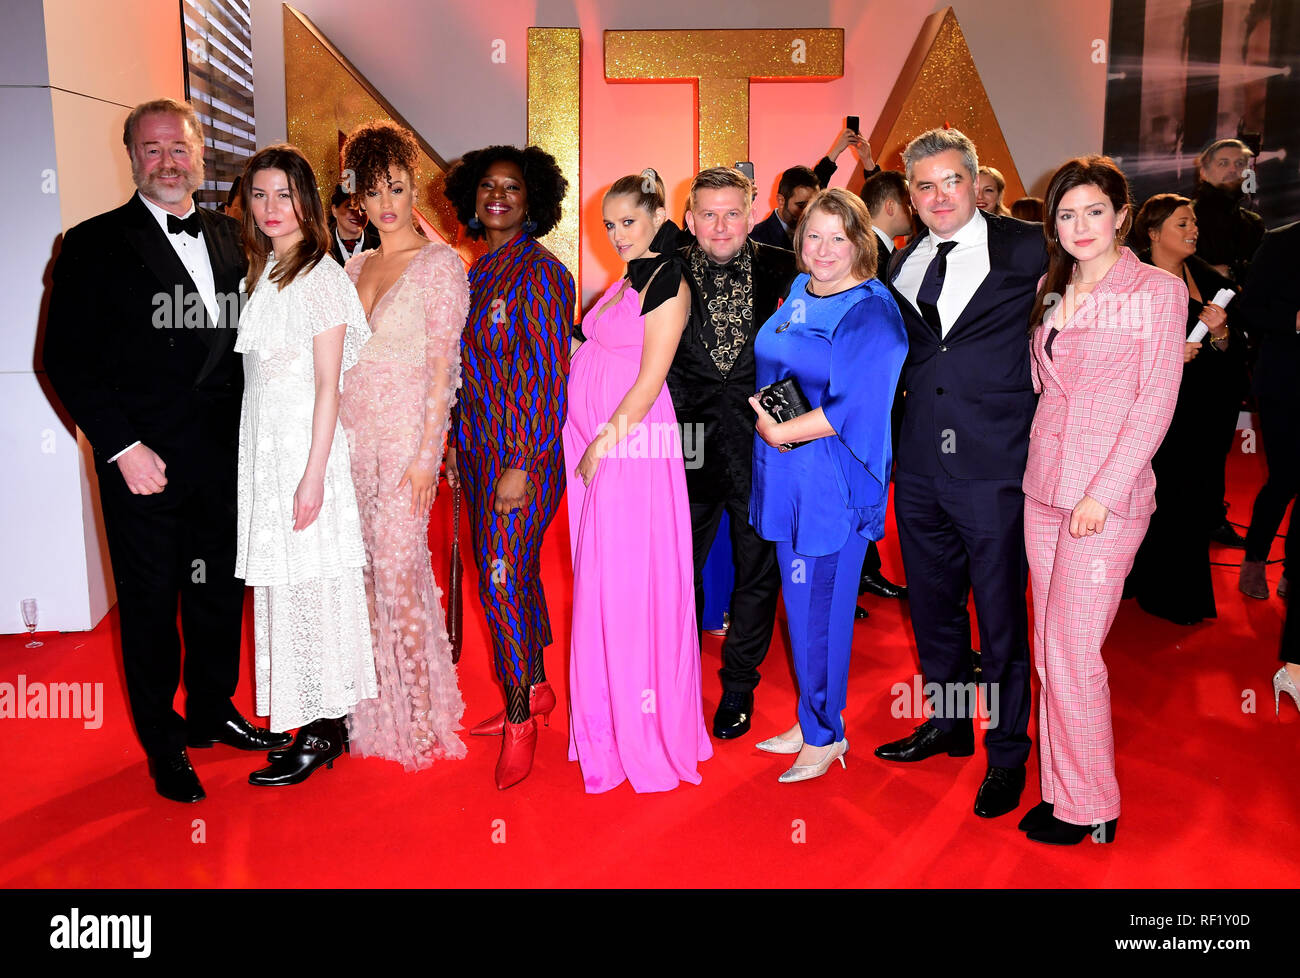 (left to right) Owen Teale, Malin Buska, Elarica Gallacher, Tanya Moodie, Teresa Palmer, Greg McHugh, Deborah Harkness and guest attending the National Television Awards 2019 held at the O2 Arena, London. PRESS ASSOCIATION PHOTO. Picture date: Tuesday January 22, 2019. See PA story SHOWBIZ NTAs. Photo credit should read: Ian West/PA Wire - Stock Image